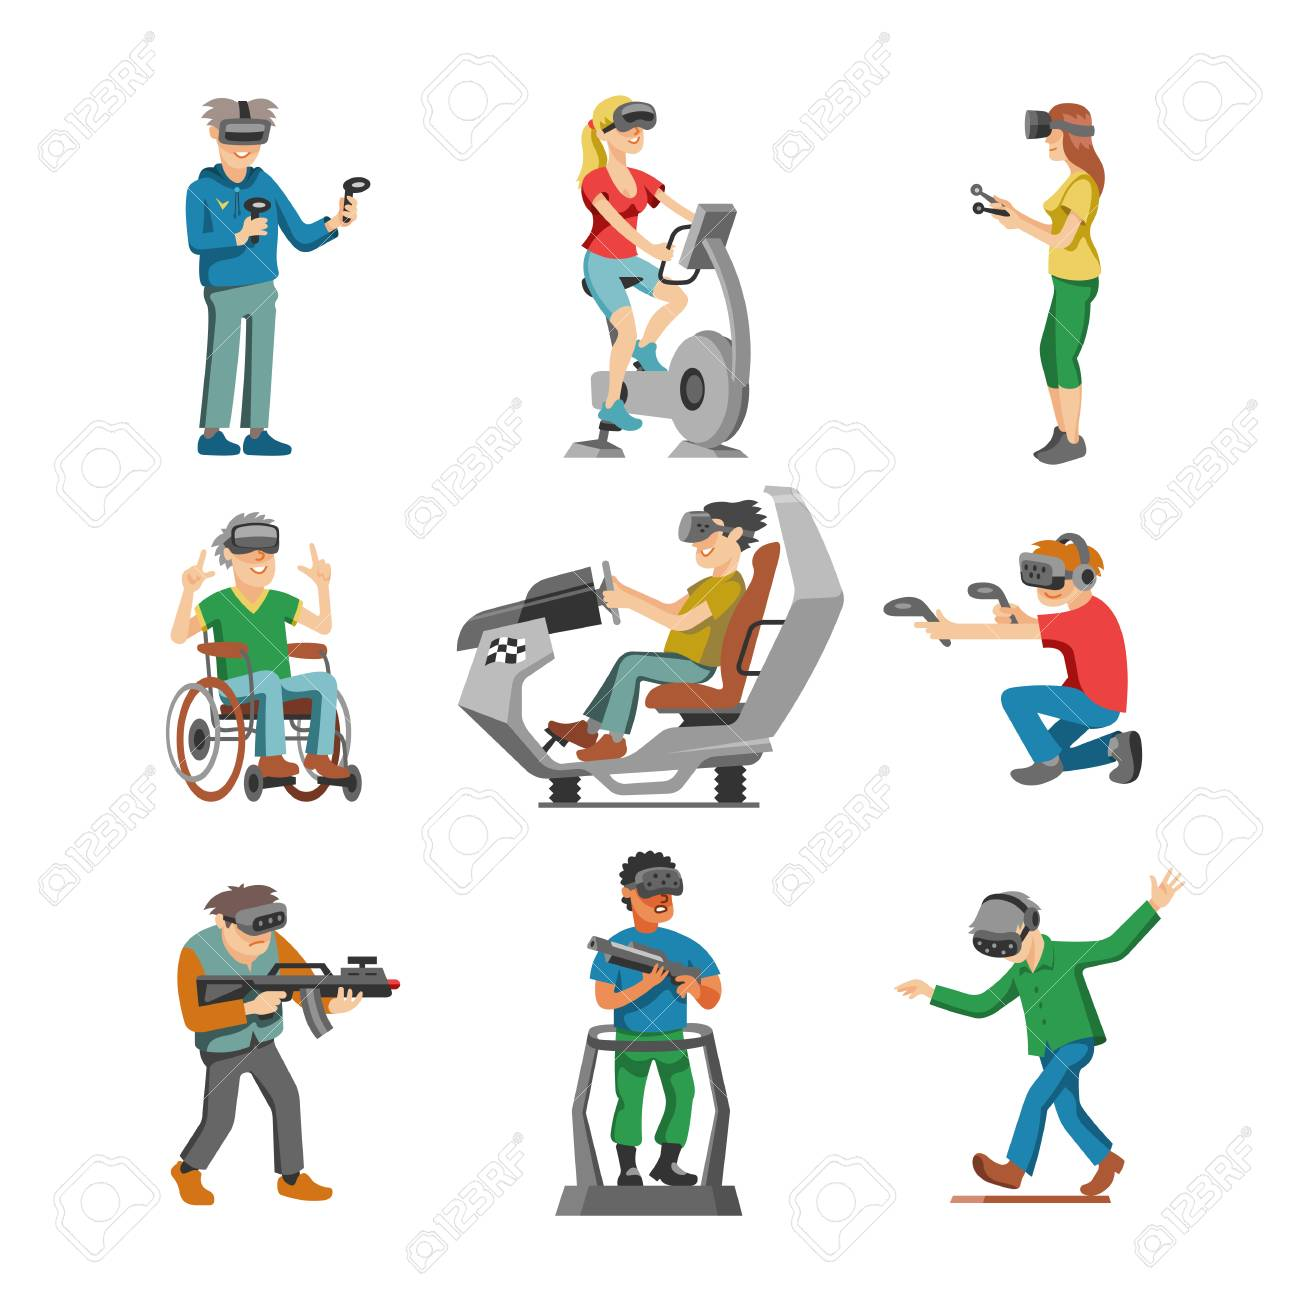 c8c78b2a116 Vector - Virtual reality vector character gamer with vr glasses and person  playing in virtuallization technology illustration set of people gaming in  ...